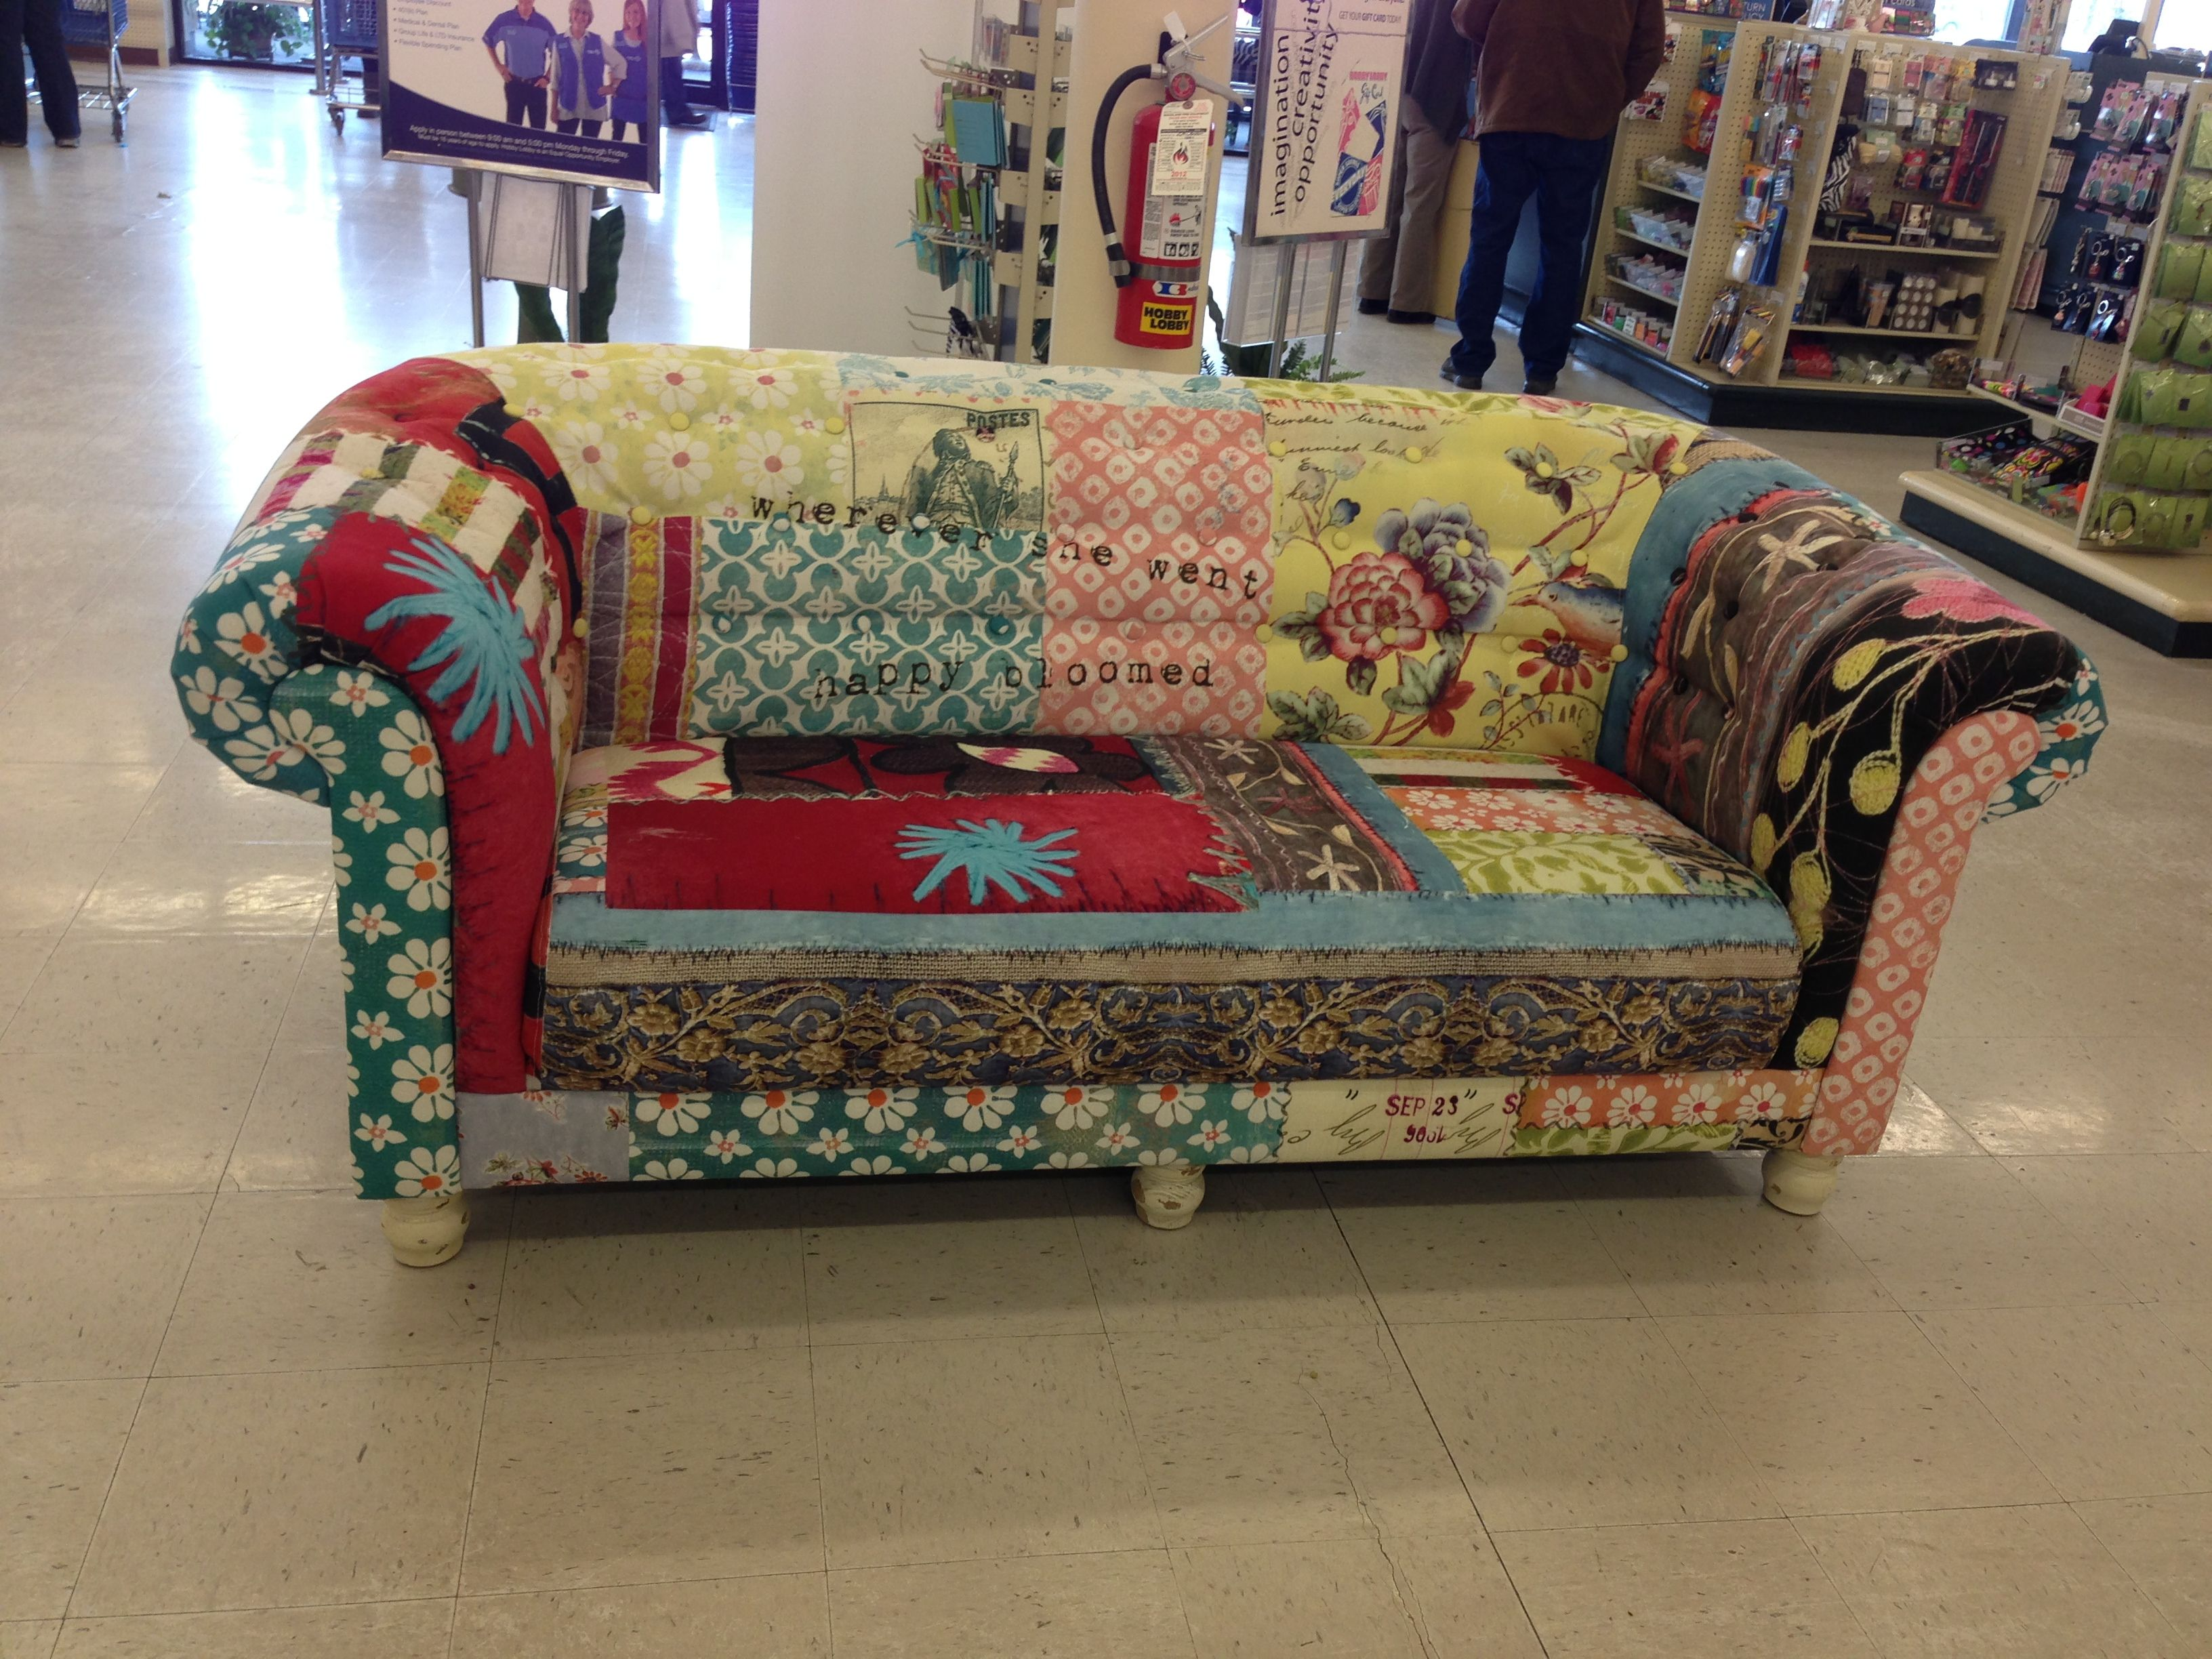 Patchwork Sofa Patchwork Sofa Home Decor In 2019 Patchwork Sofa Patchwork